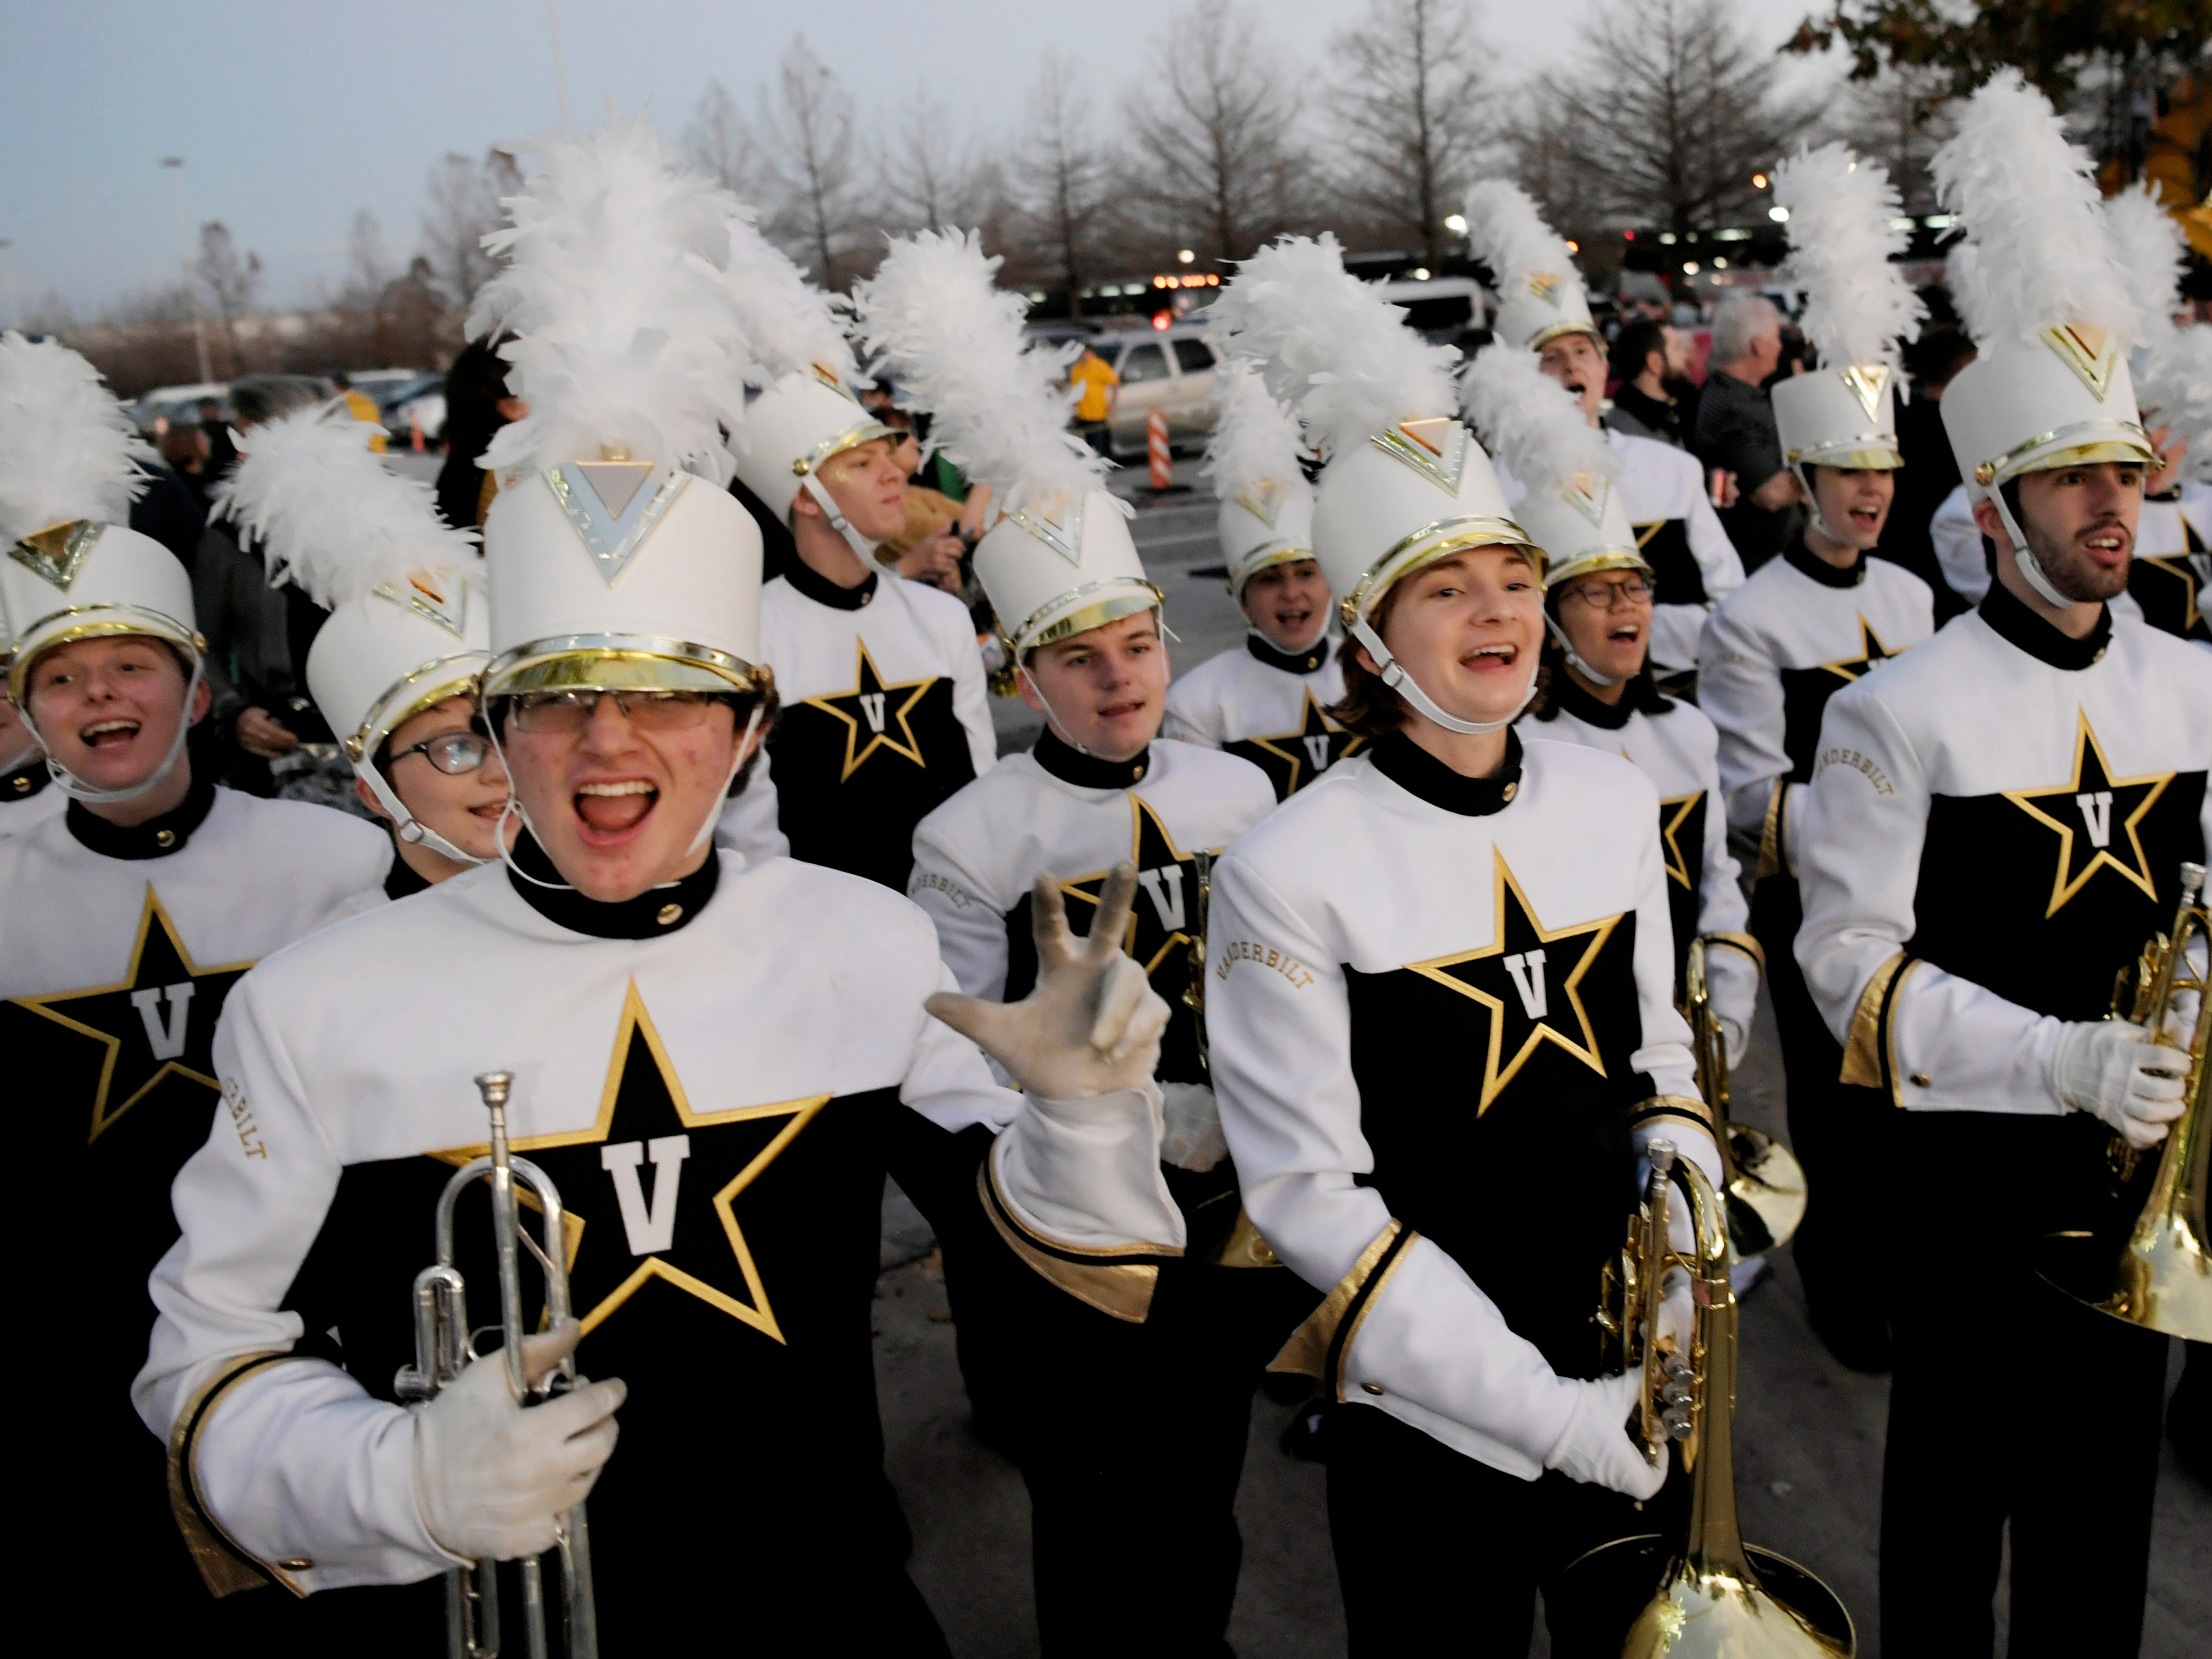 Vanderbilt's marching band participates in the Star Walk before the Academy Sports + Outdoors Texas Bowl at NRG Stadium in Houston on Thursday, Dec. 27, 2018.